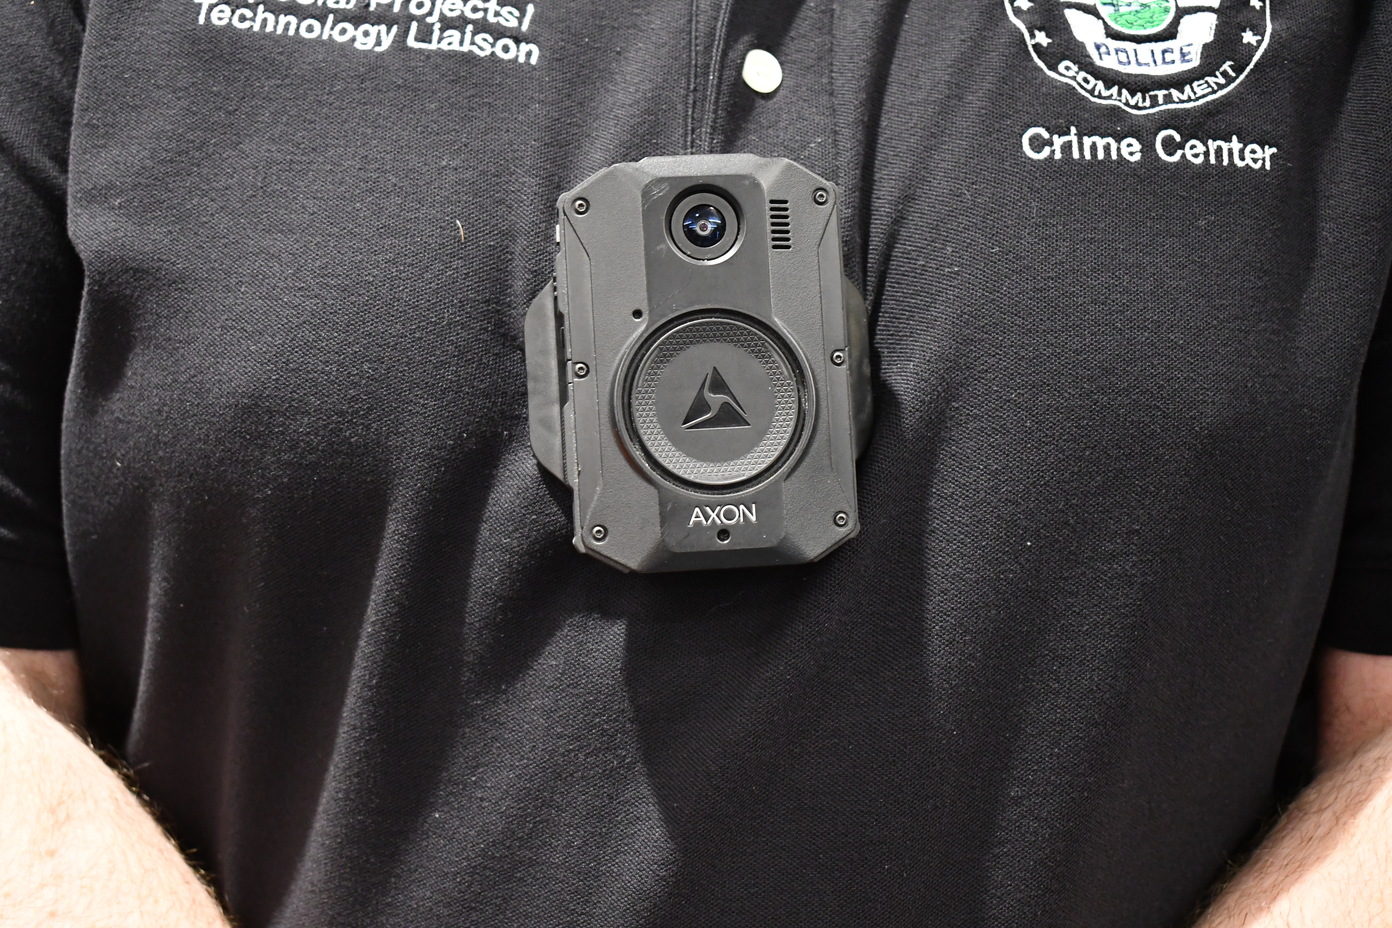 The new Axon 3 body cam, issued to the Orlando Police department. Photo: Juan Carlo Rodriguez/Florida National News.